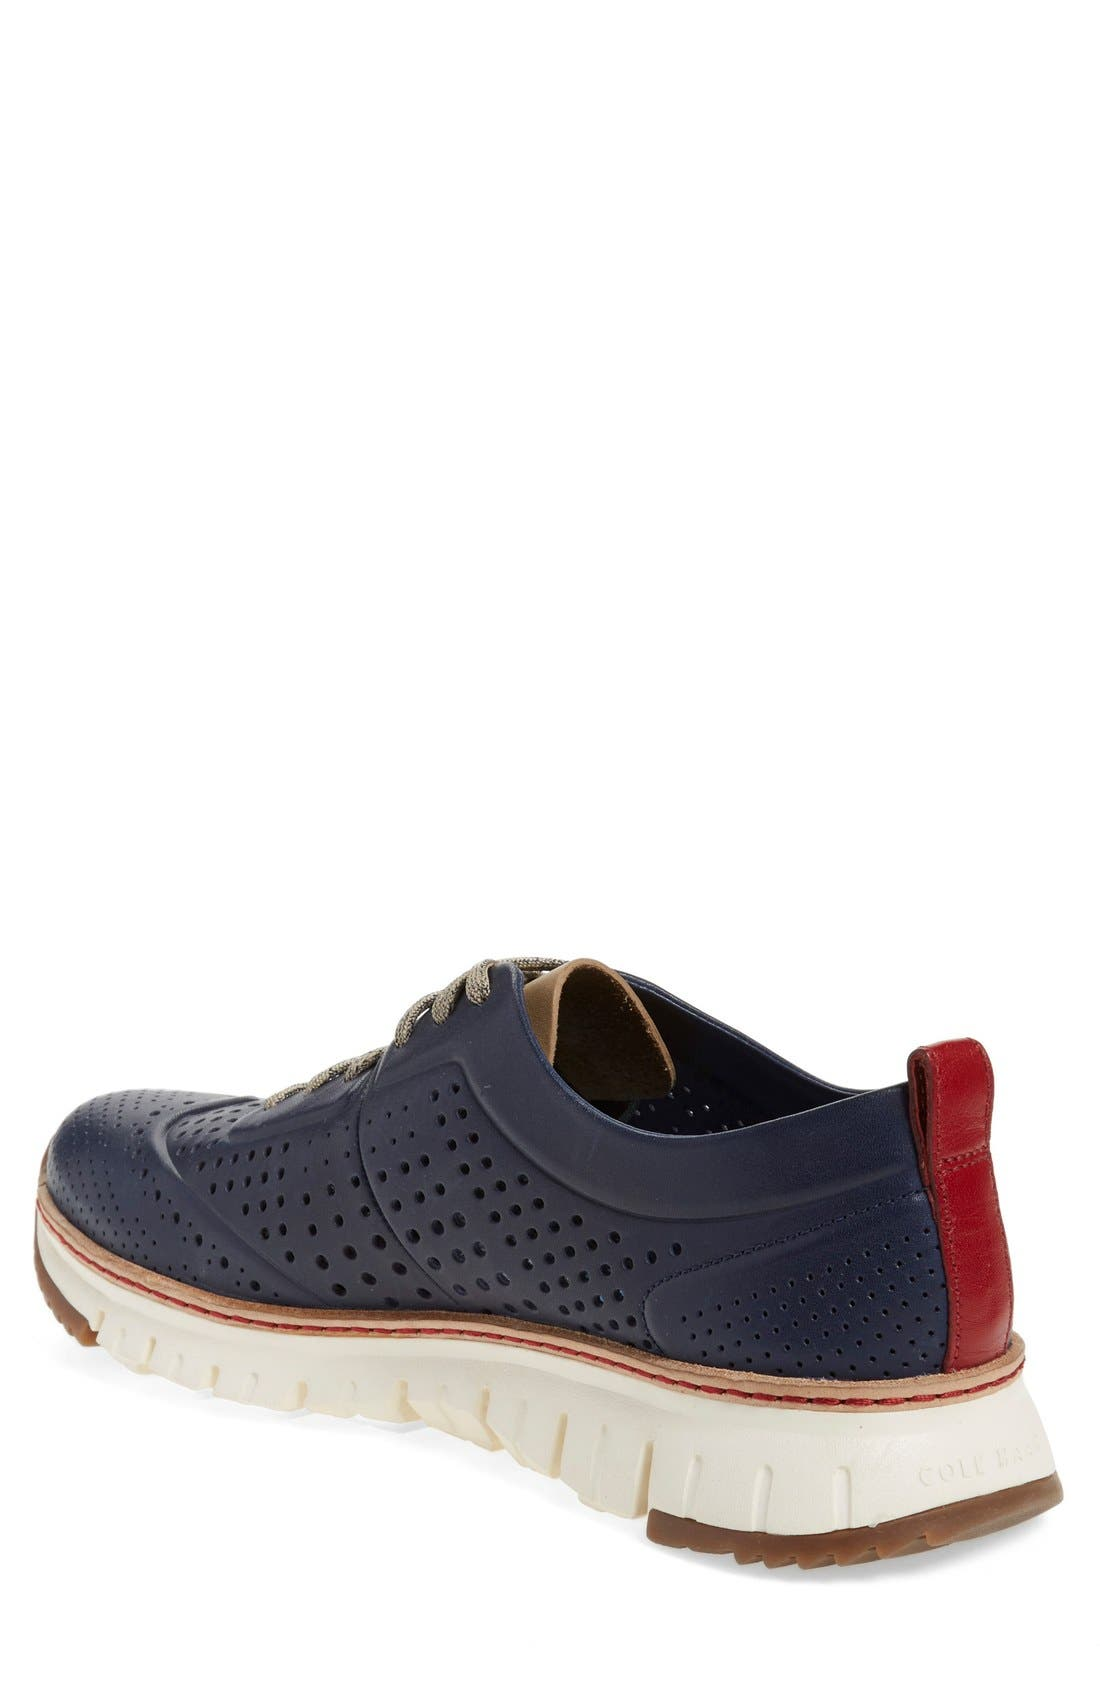 COLE HAAN,                             'ZerøGrand' Perforated Wingtip Sneaker,                             Alternate thumbnail 6, color,                             400